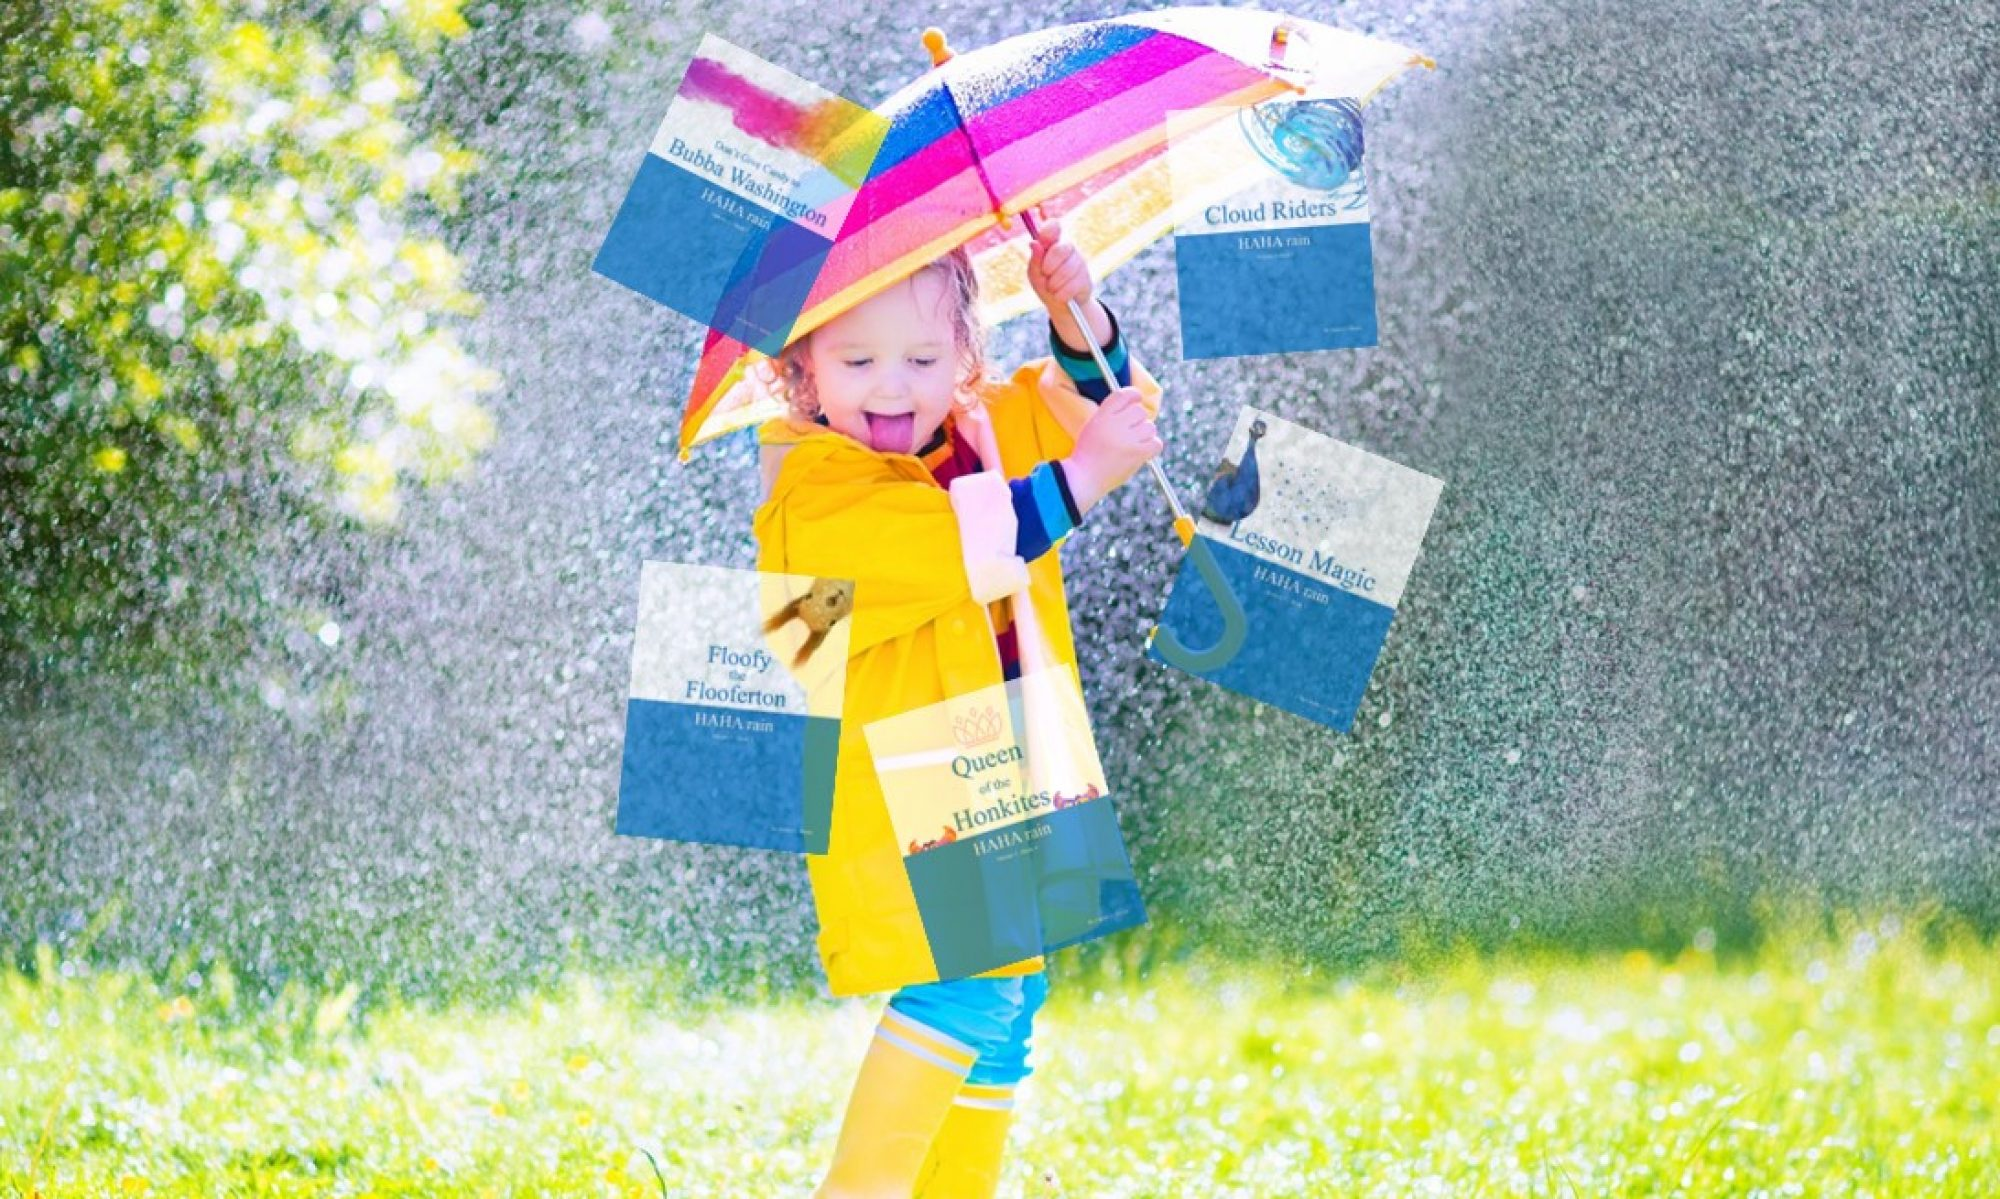 HAHA rain - For kids ages 1-120